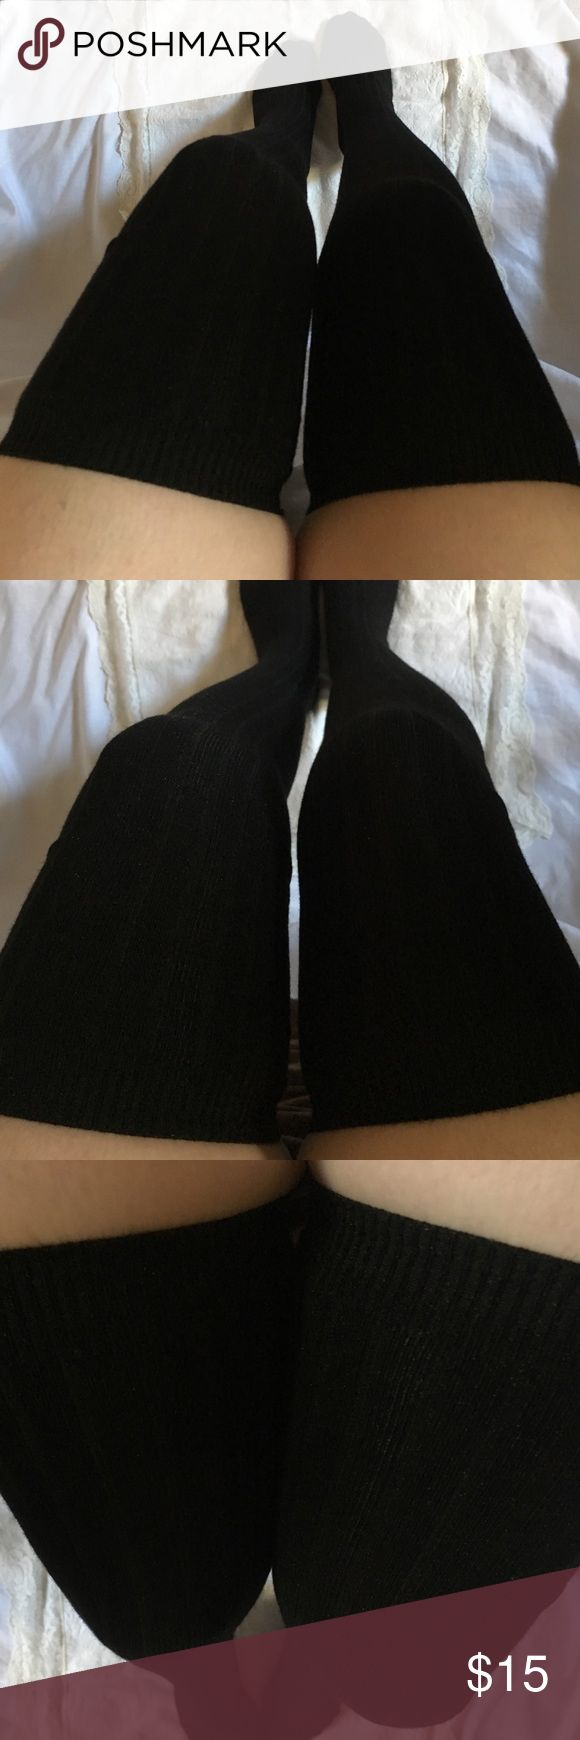 "🖤 2/$24. Thigh High Socks-Black New! Ribbed thigh high socks. 100% cotton. Will fit up to S/M.  I'm 5'4"" & the sock ends about 5"" over my knee. 🌸Also available in gray, dark gray, & brown.🌸 Accessories Hosiery & Socks"